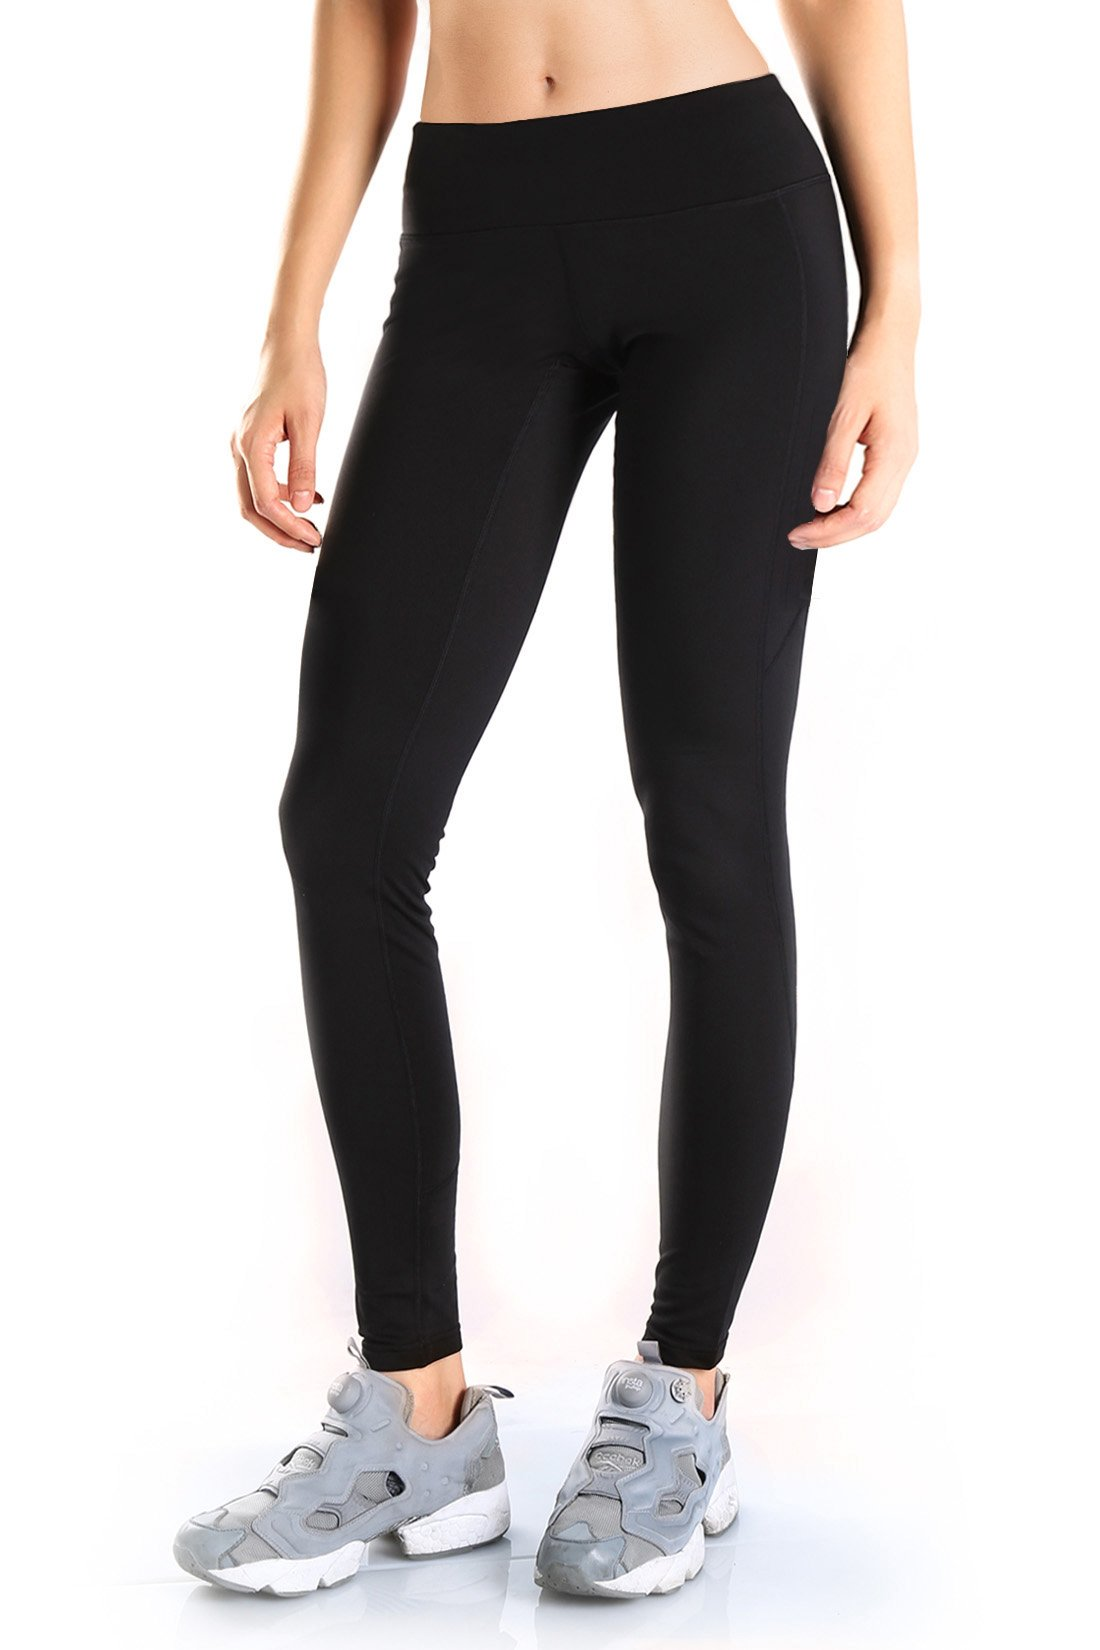 6d22b138a7 Best Rated in Women's Sports Pants & Helpful Customer Reviews ...